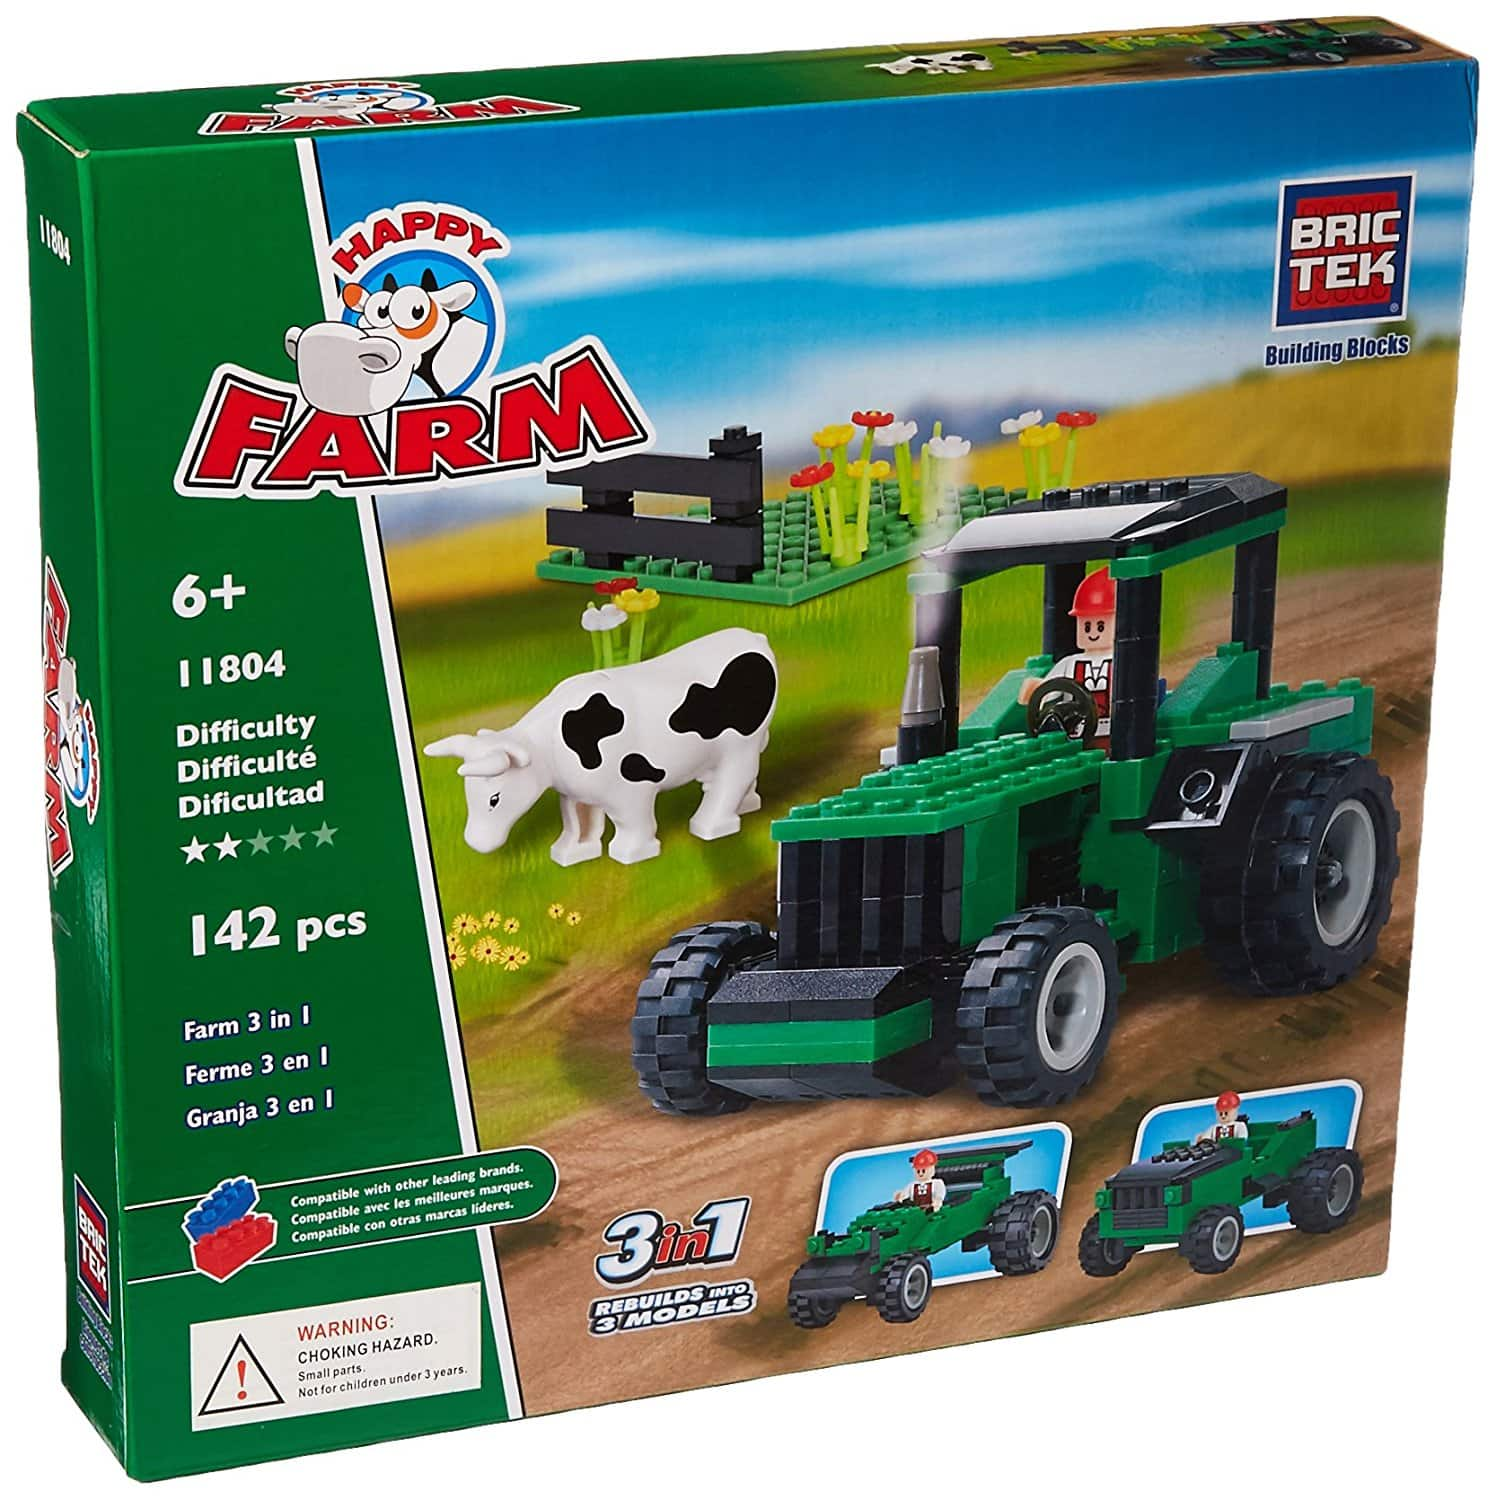 Brictek Farm 3 in 1 Building Kit (142pc.) $3.92 *Add-On @Amazon + Free Shipping